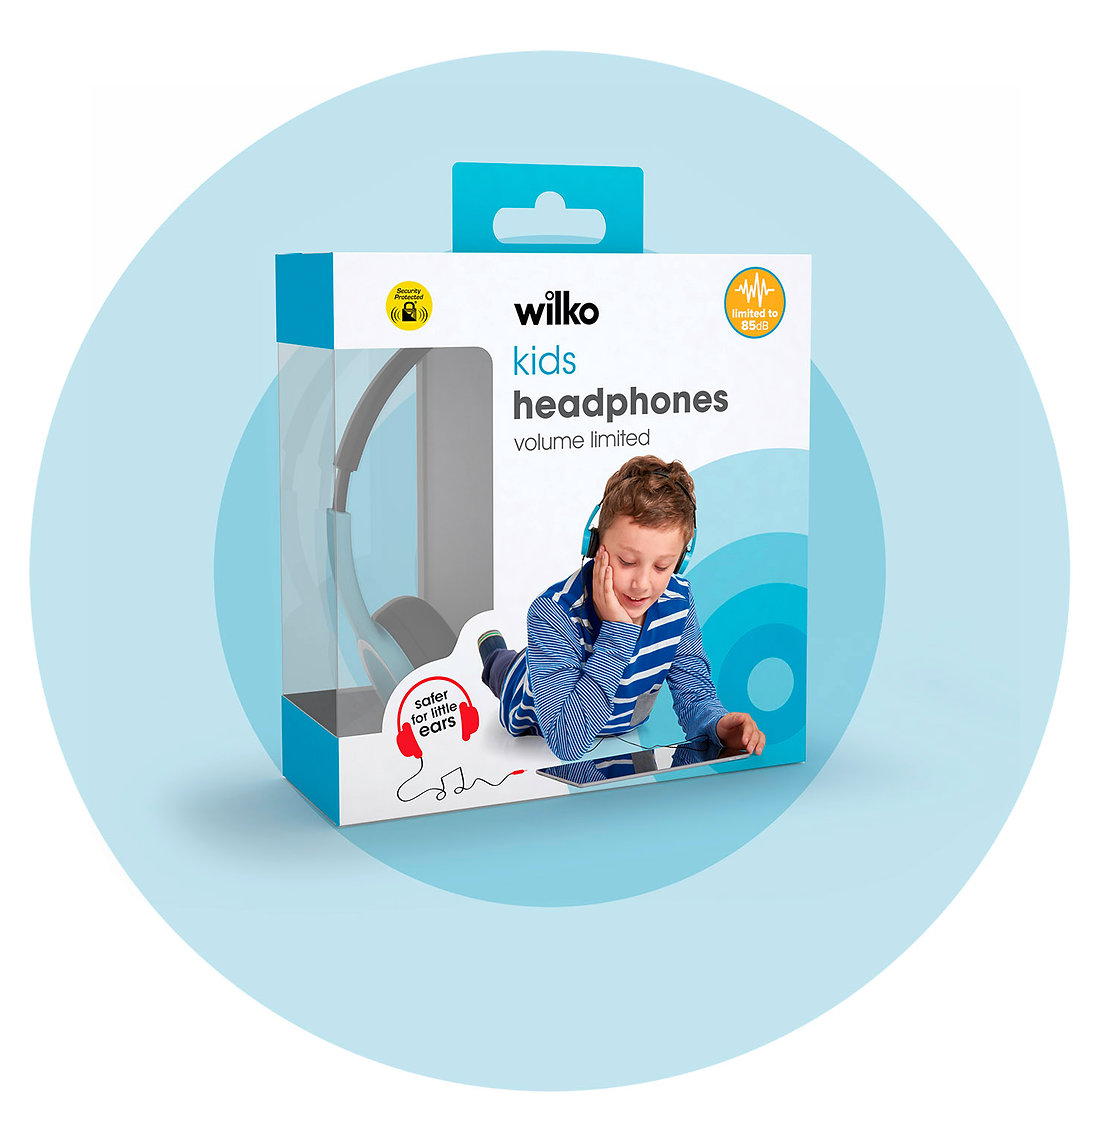 Wilko kids volume limited headphones packaging on blue target